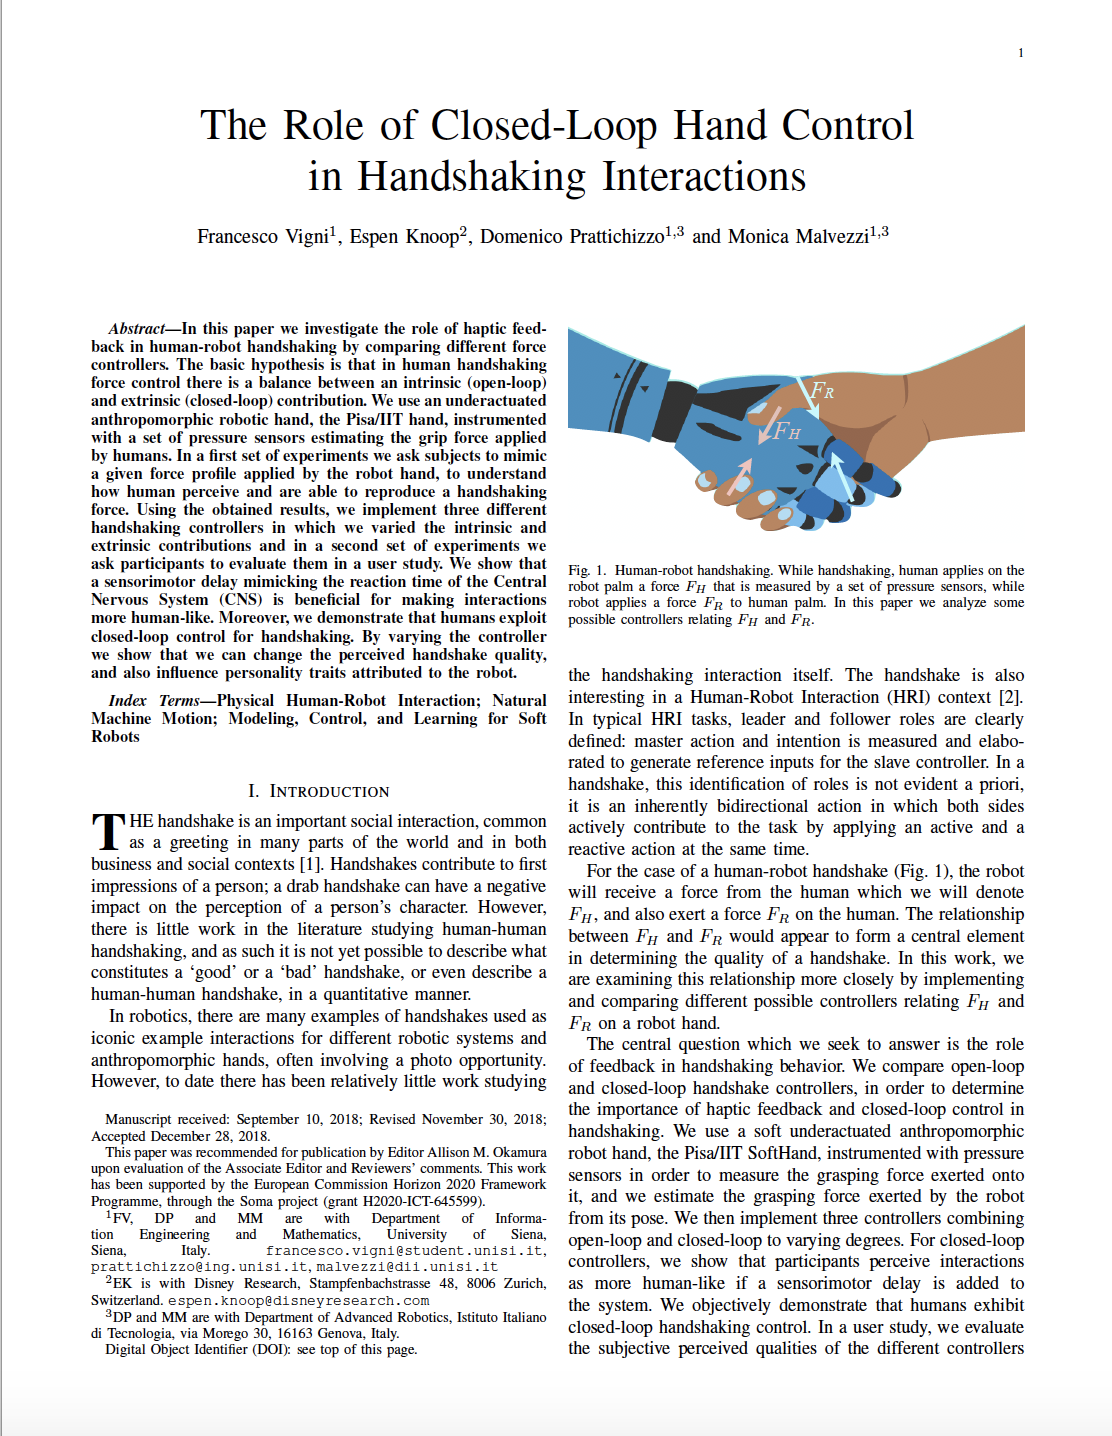 The Role of Closed-Loop Hand Control in Handshaking Interactions